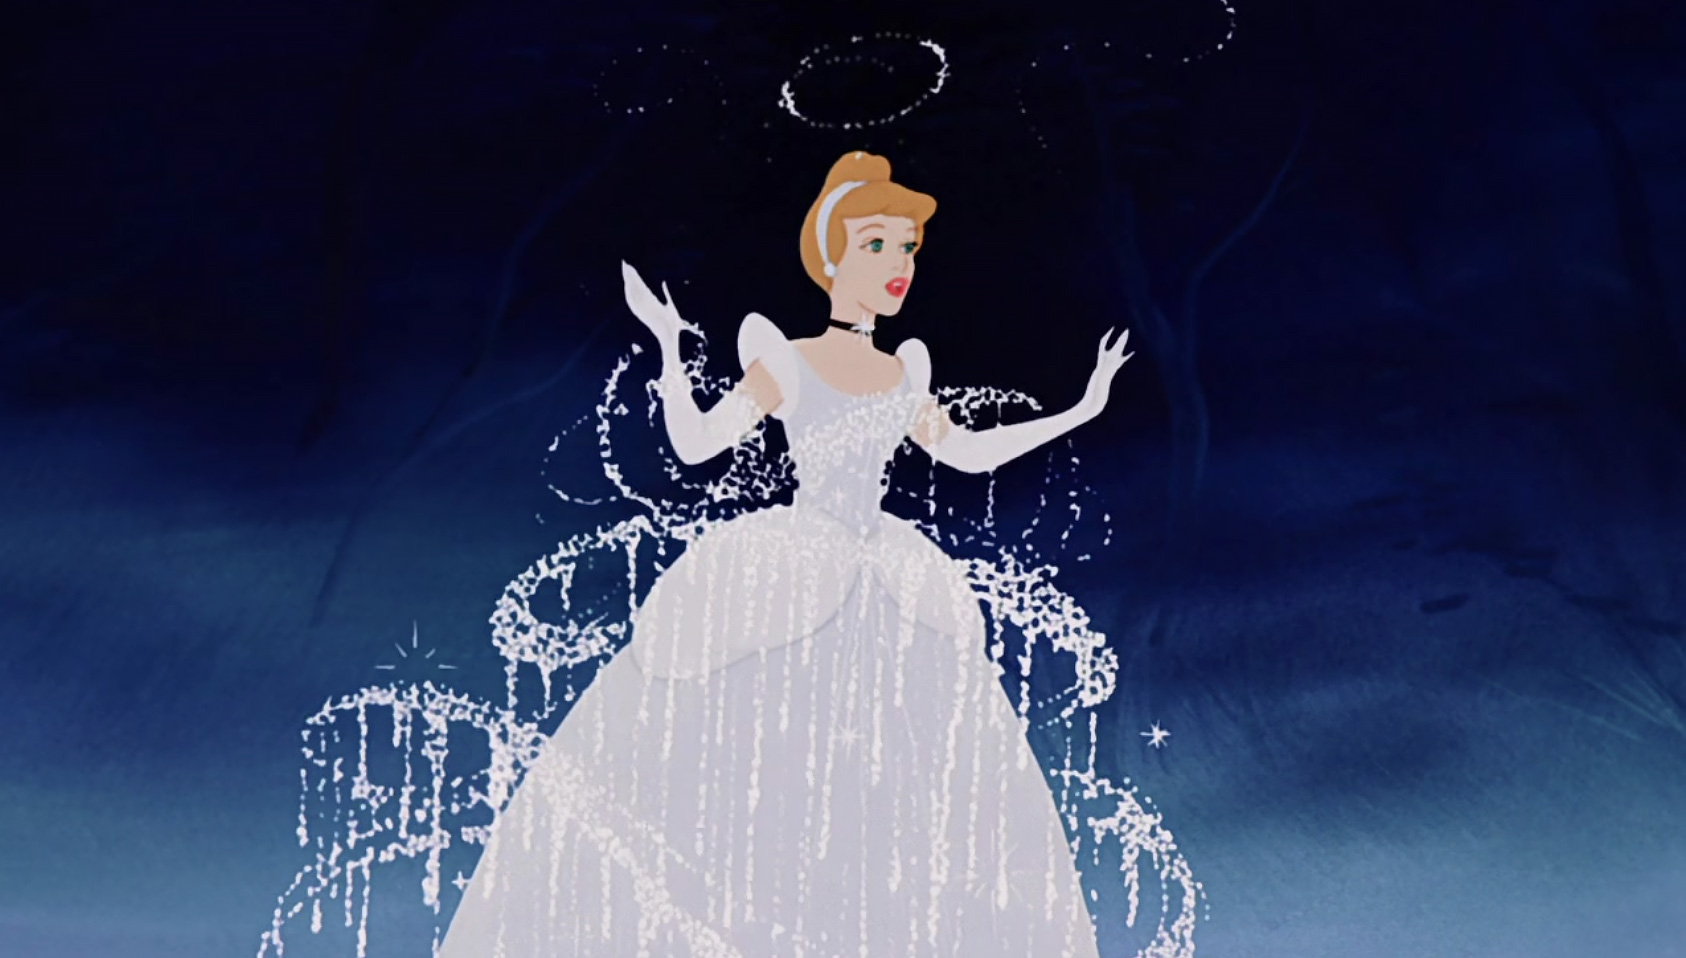 Screenshot of Cinderella transforming in Disney animation film.